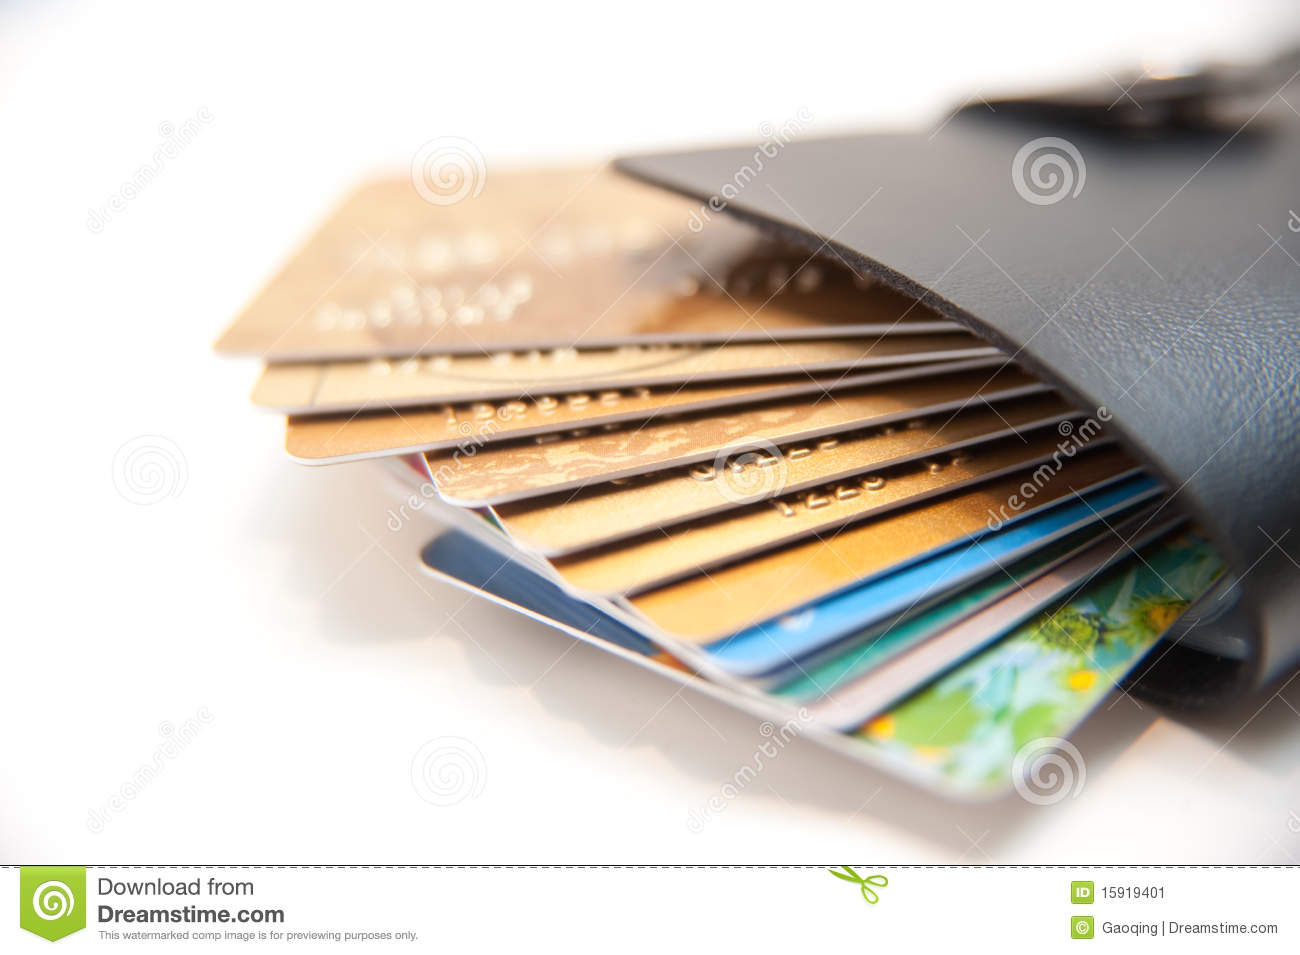 Too much credit card debt help